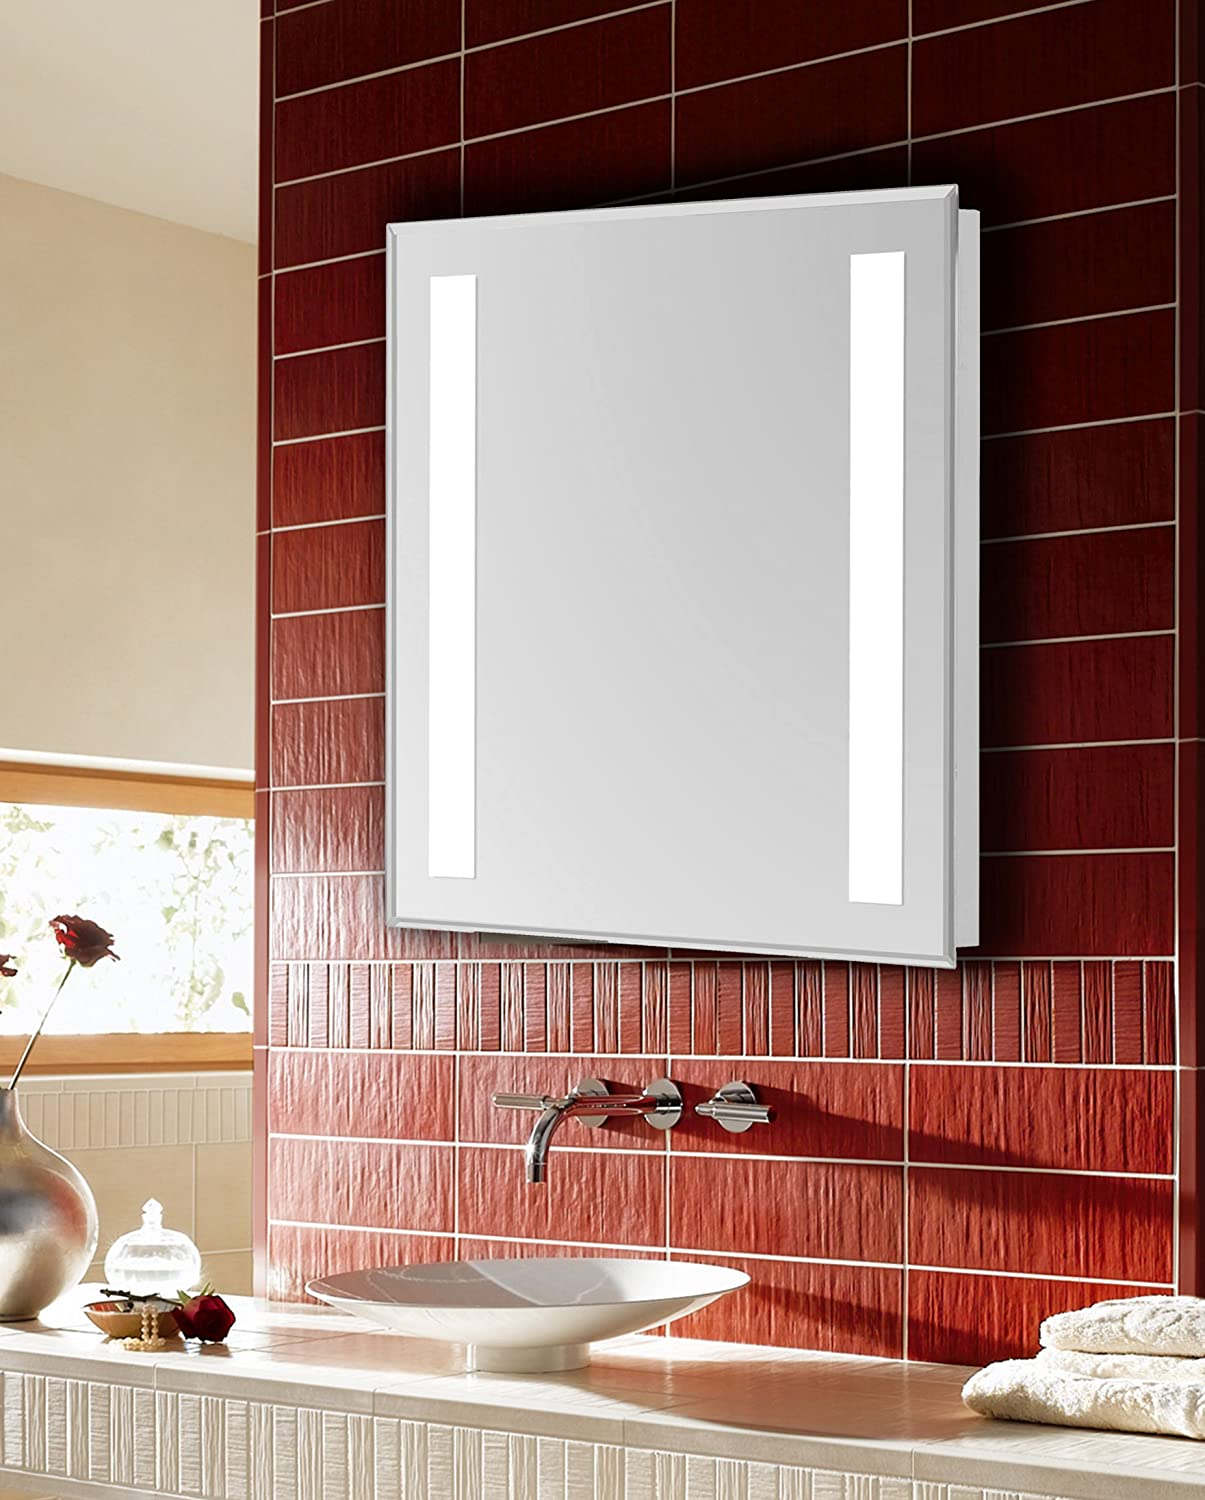 Decor Central ADEMIR-18909 Rectangle Steel Frame Hardwired Mirror 24 Glossy White Finish